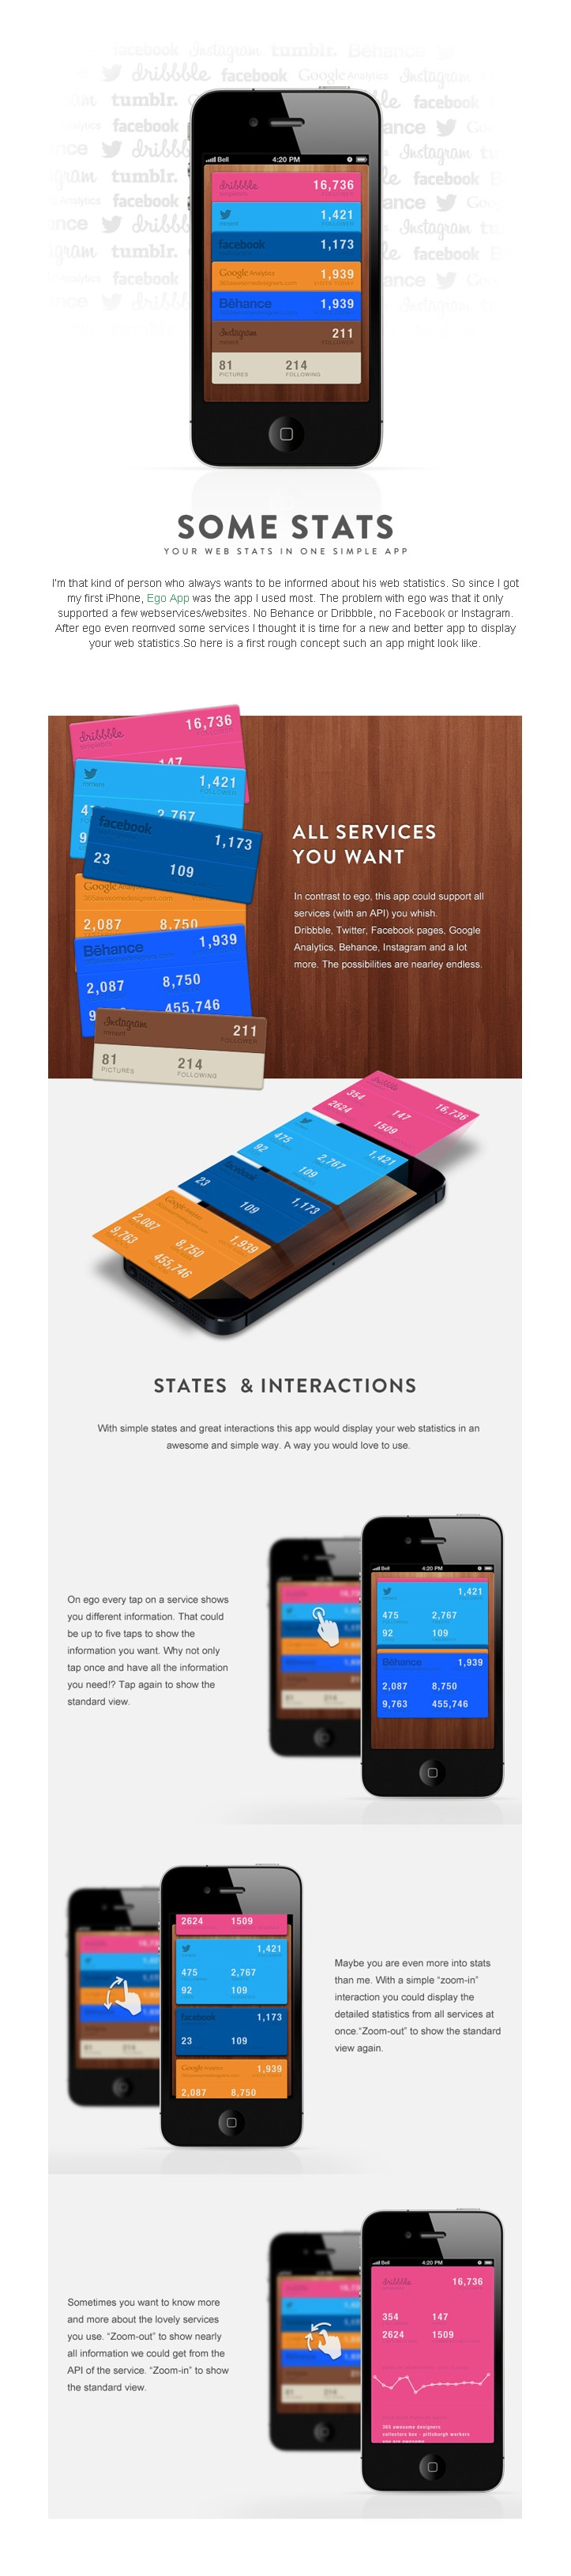 """web stats app by Matthias Mentasti, via Behance *** """" I'm that kind of person who always wants to be informed about his web statistics. So since I got my first iPhone, Ego App was the app I used most. The problem with ego was that it only supported a few webservices/websites. No Behance or Dribbble, no Facebook or Instagram. After ego even reomved some services I thought it is time for a new and better app to display your web statistics. """""""